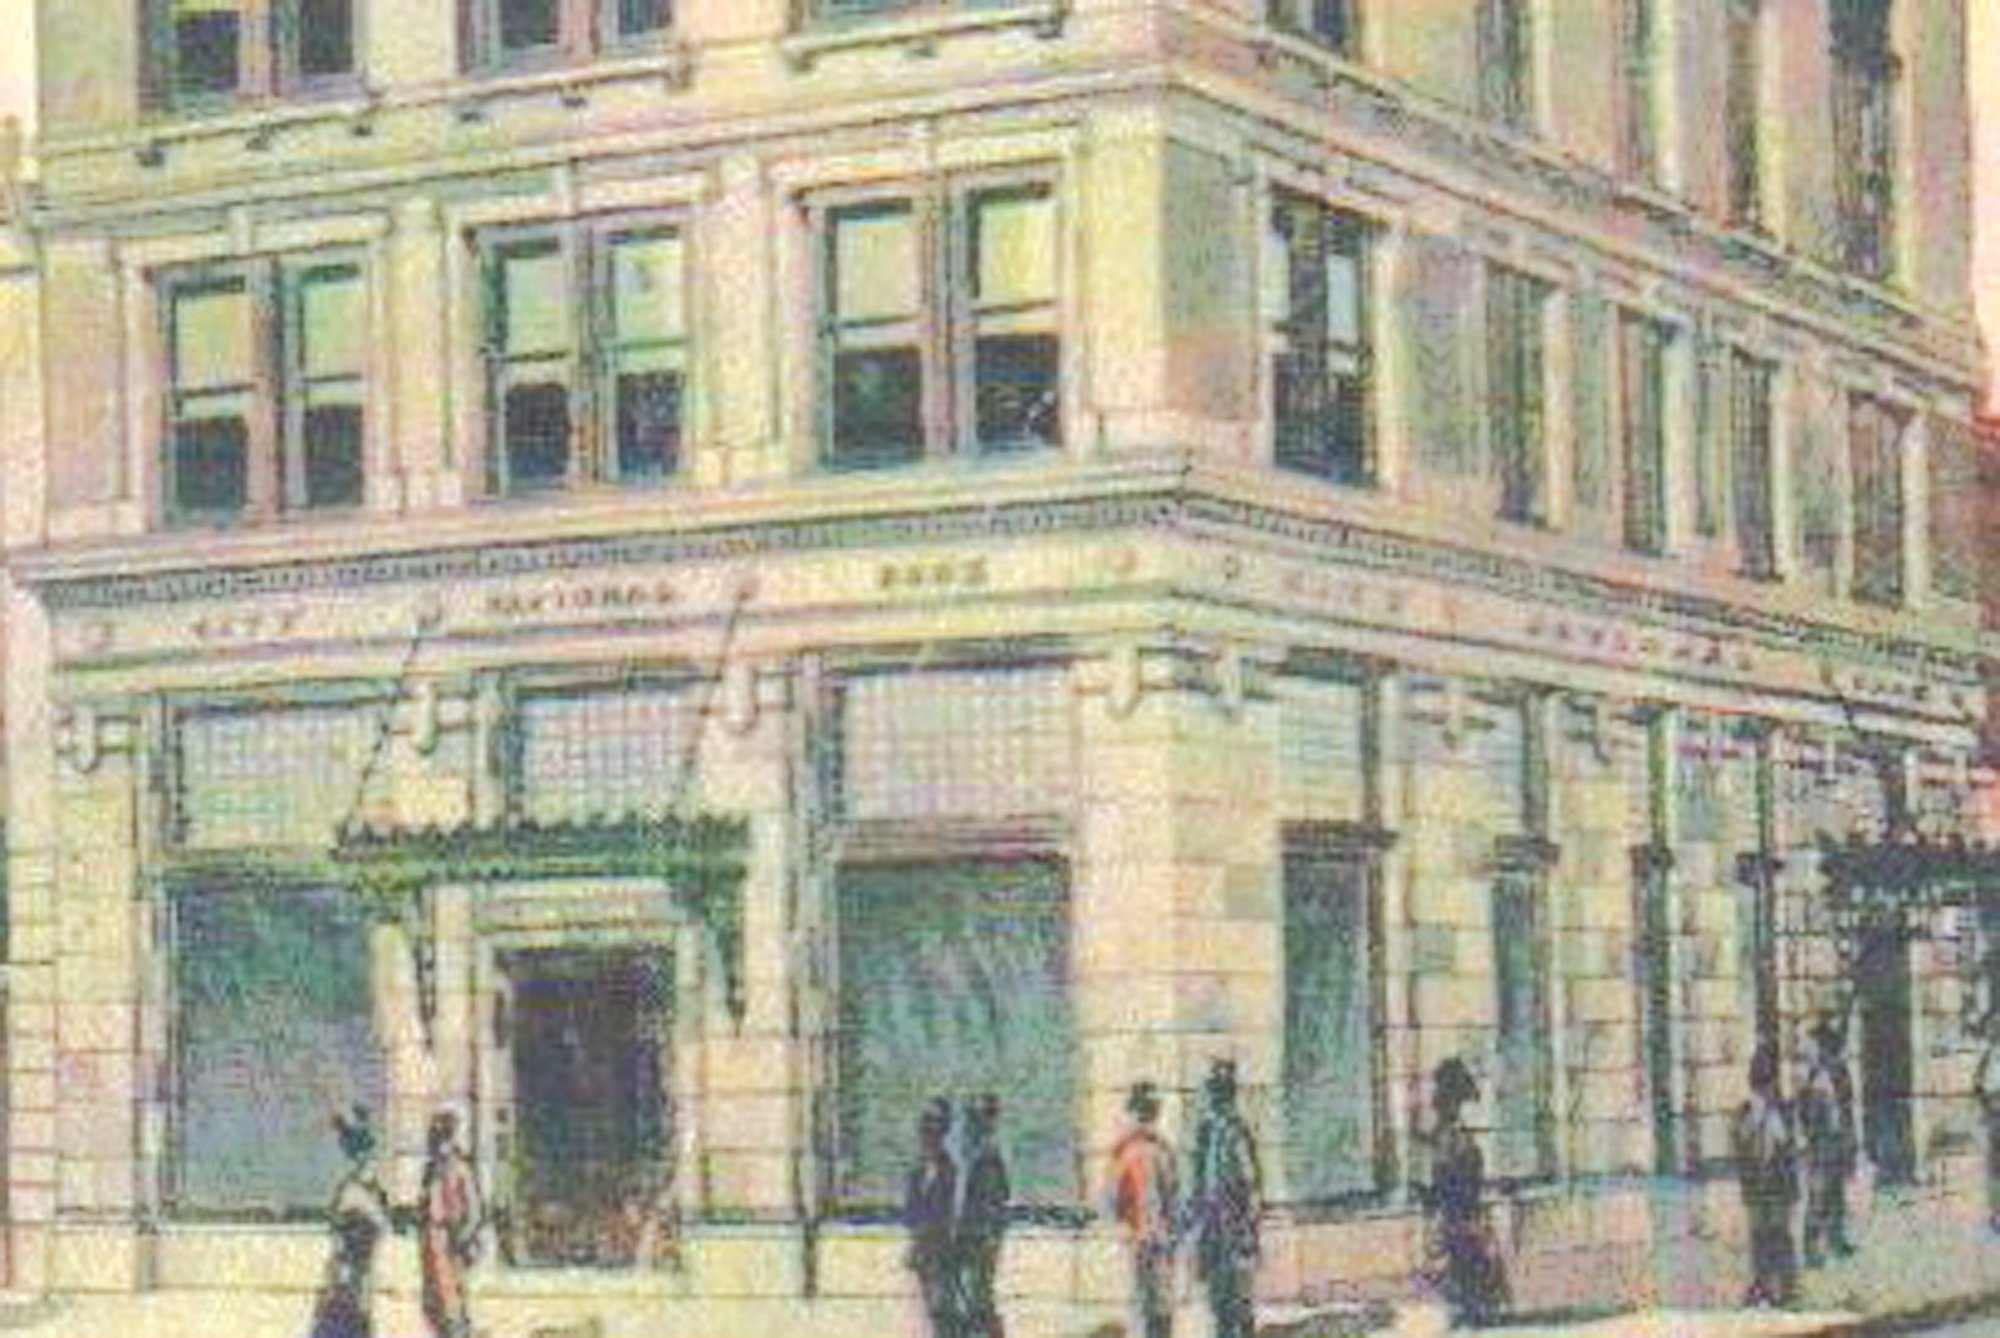 The Dixie Life Building is seen in a postcard.